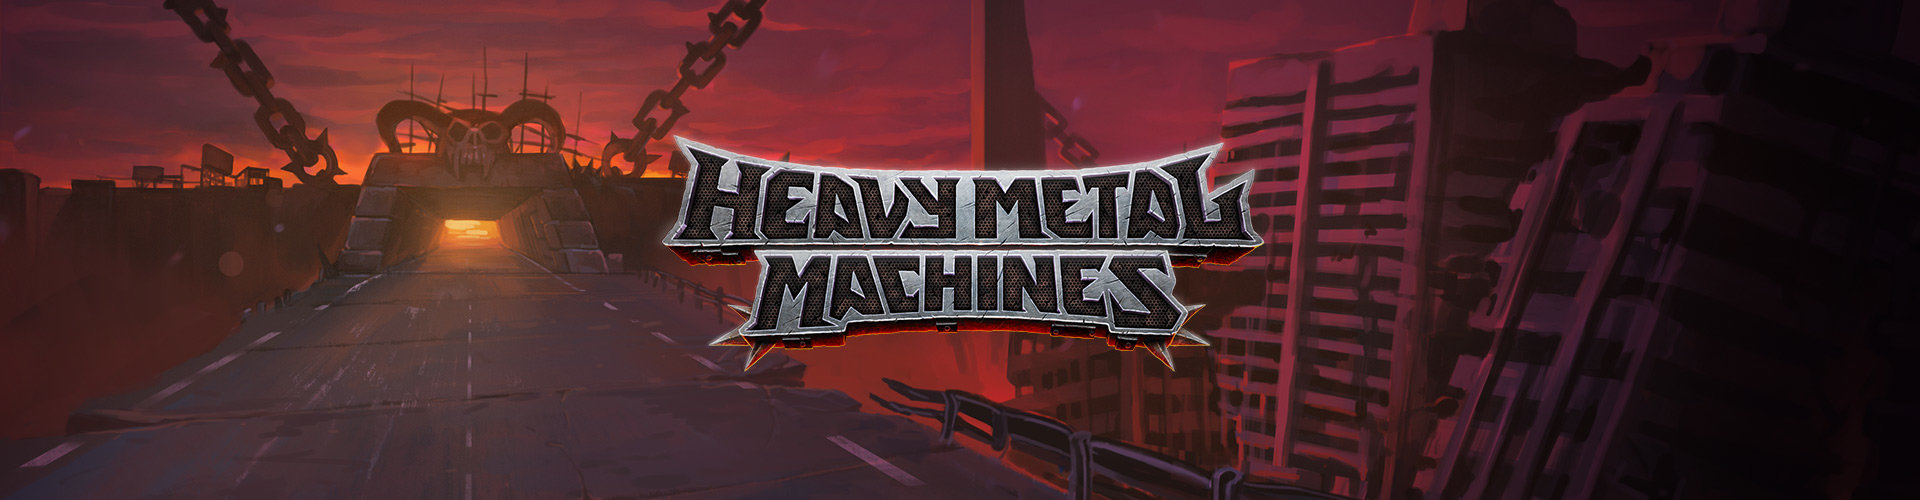 Heavy Metal Machines Forum